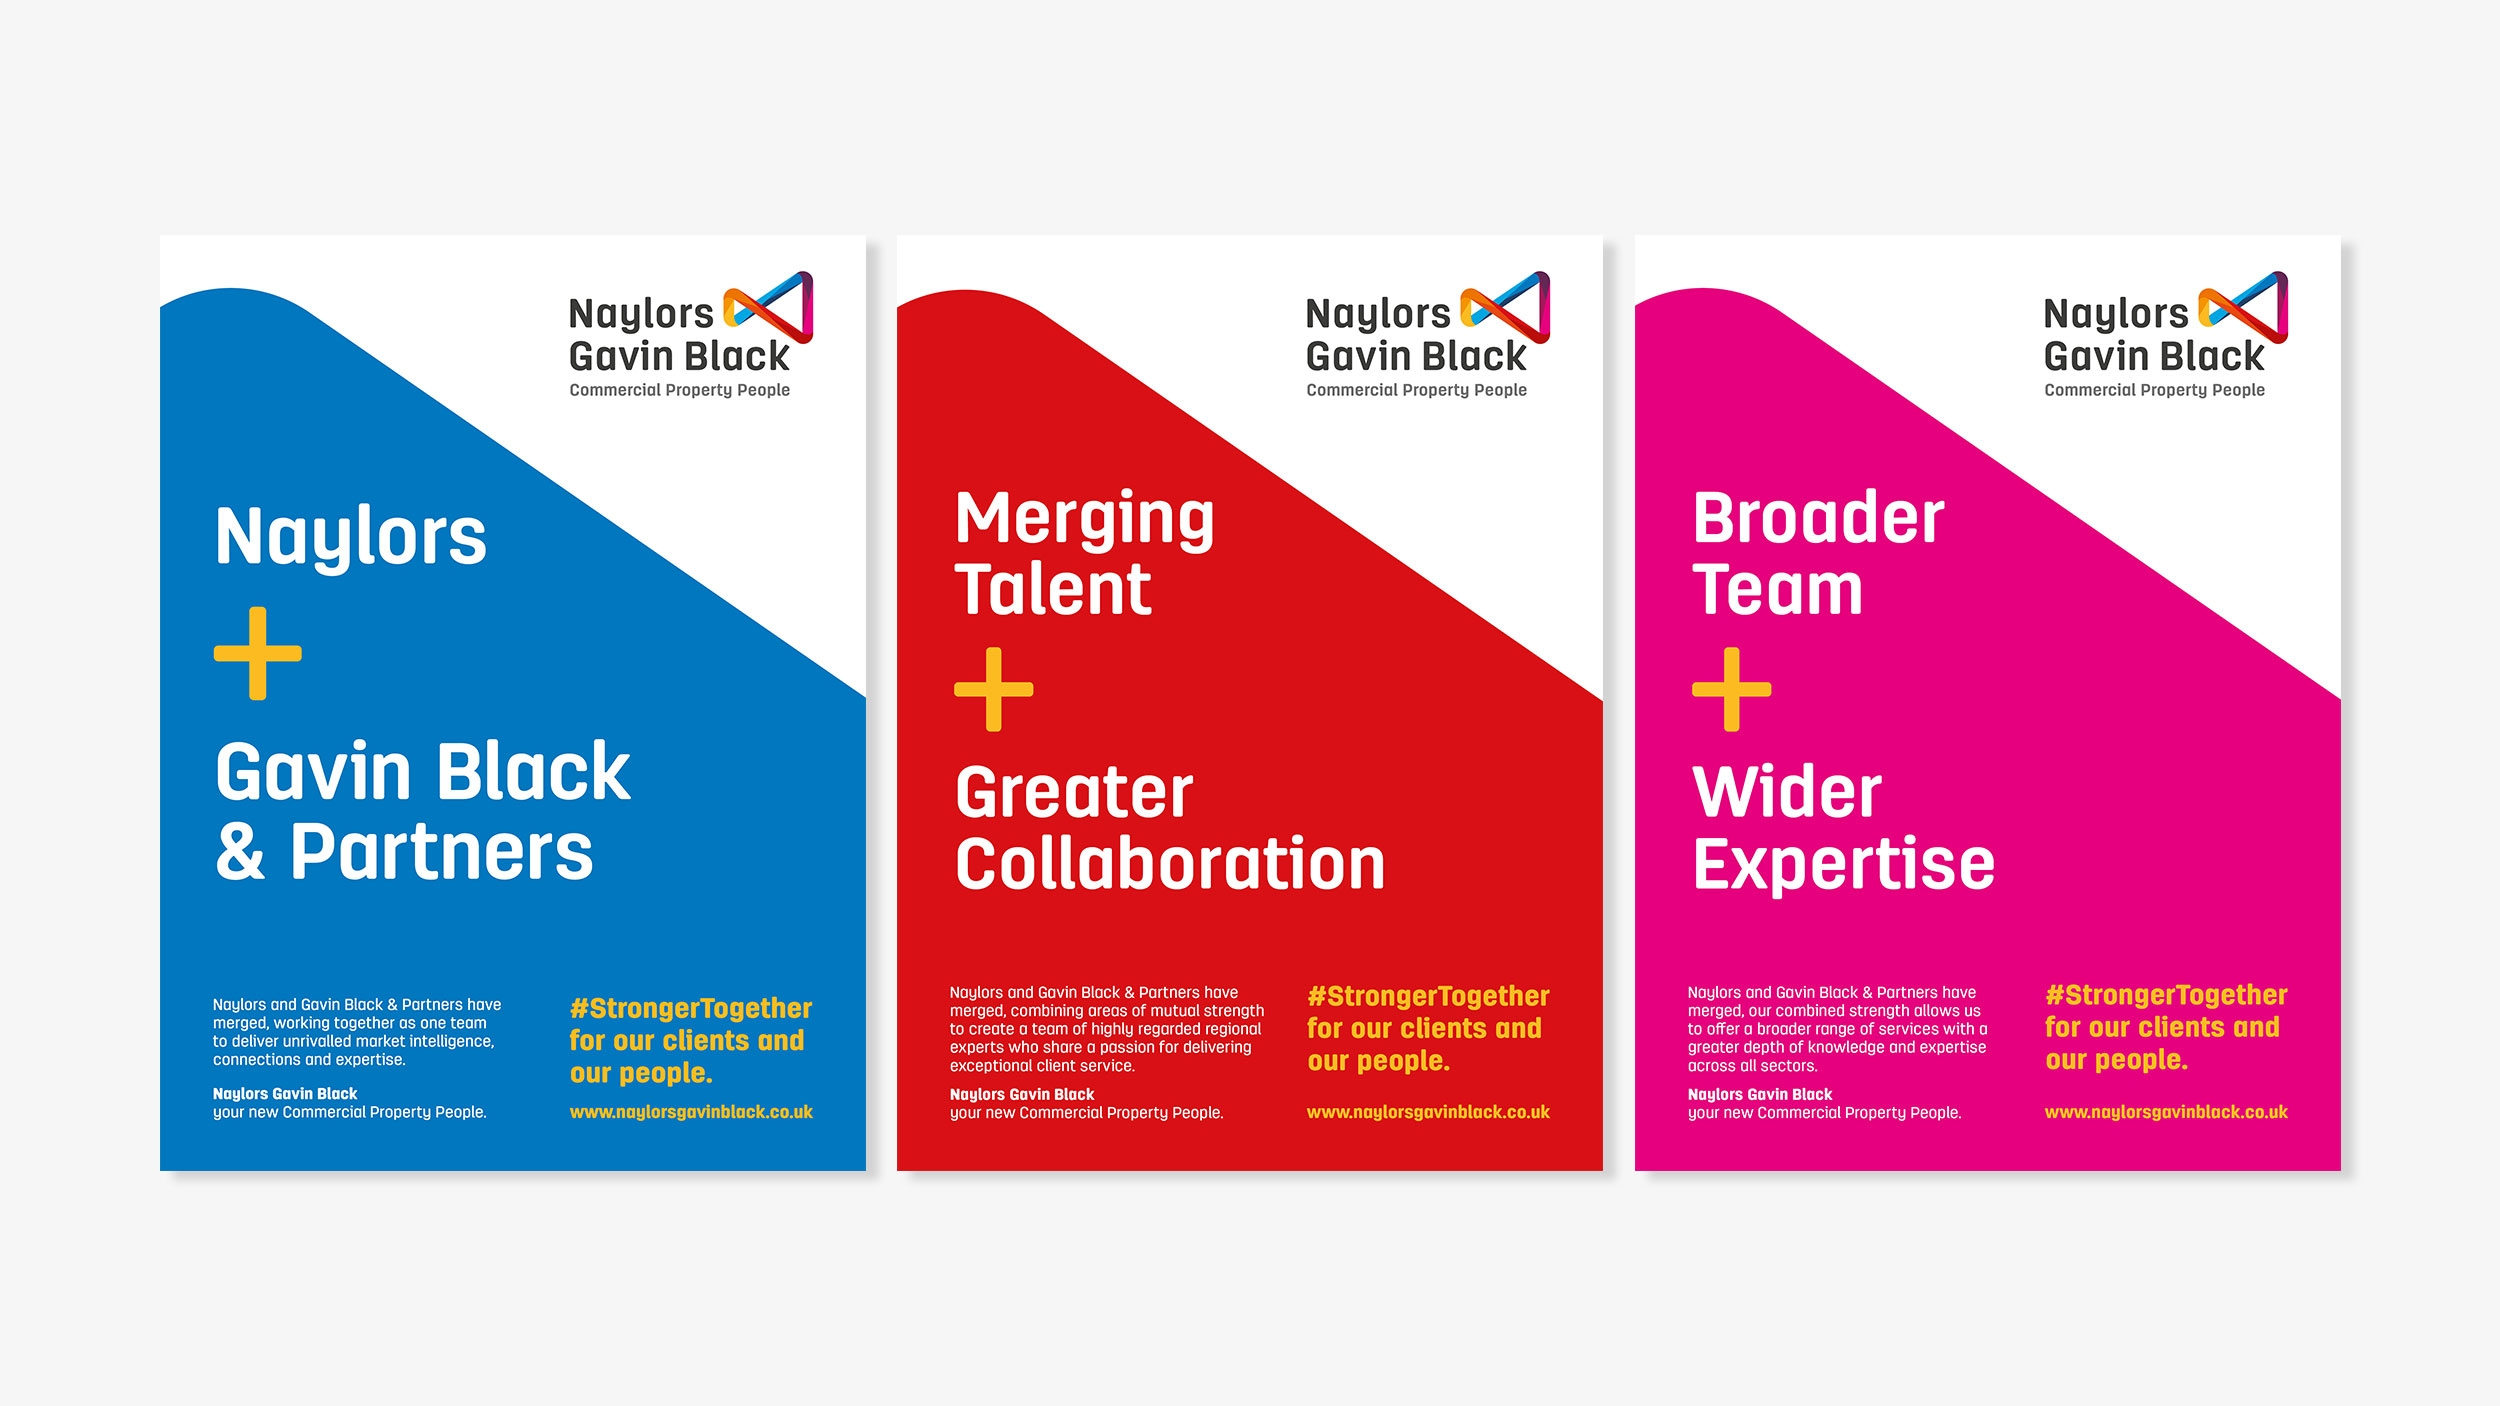 Naylors surveyors branding and advertising by Altogether creative.